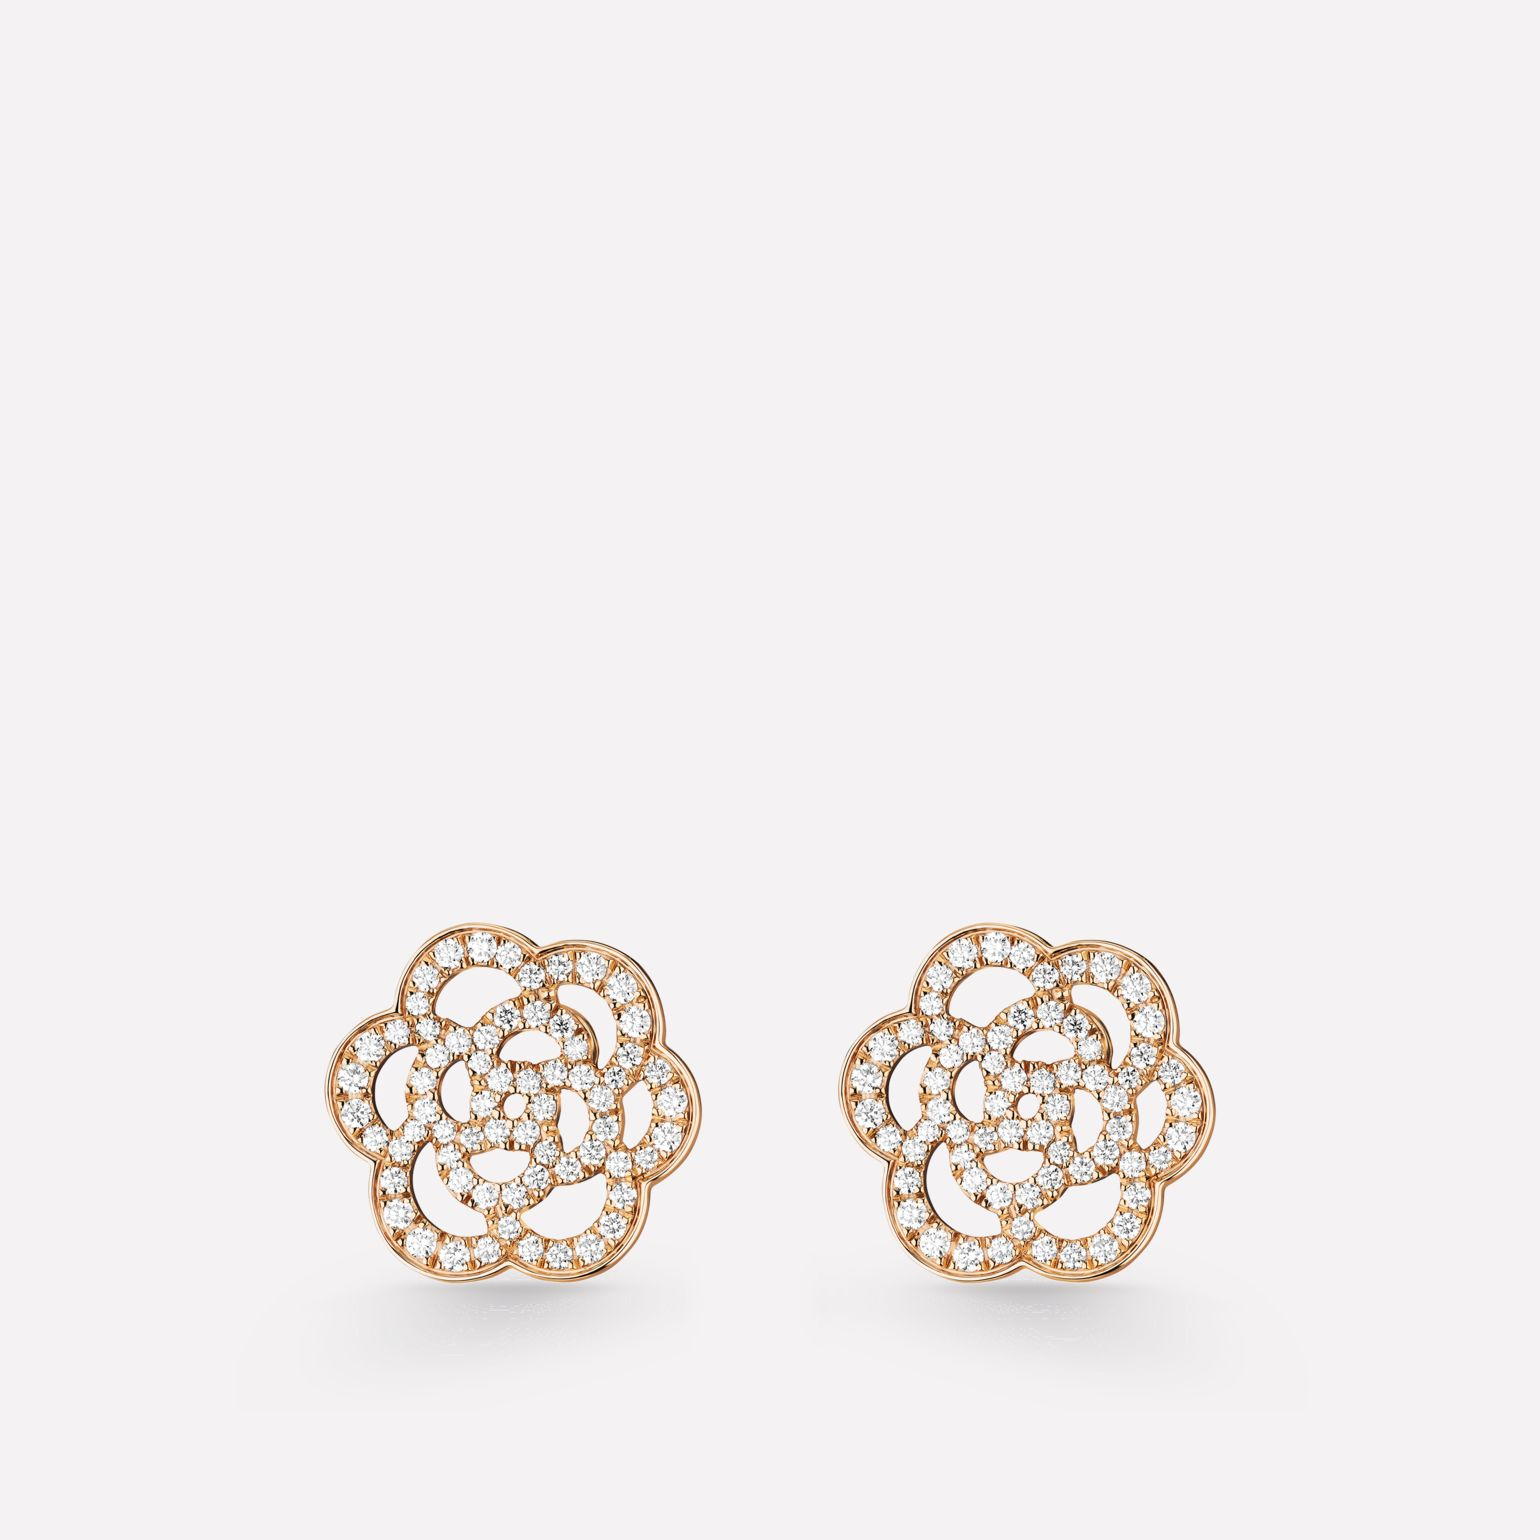 Camélia Ajouré earrings 18K pink gold, diamonds